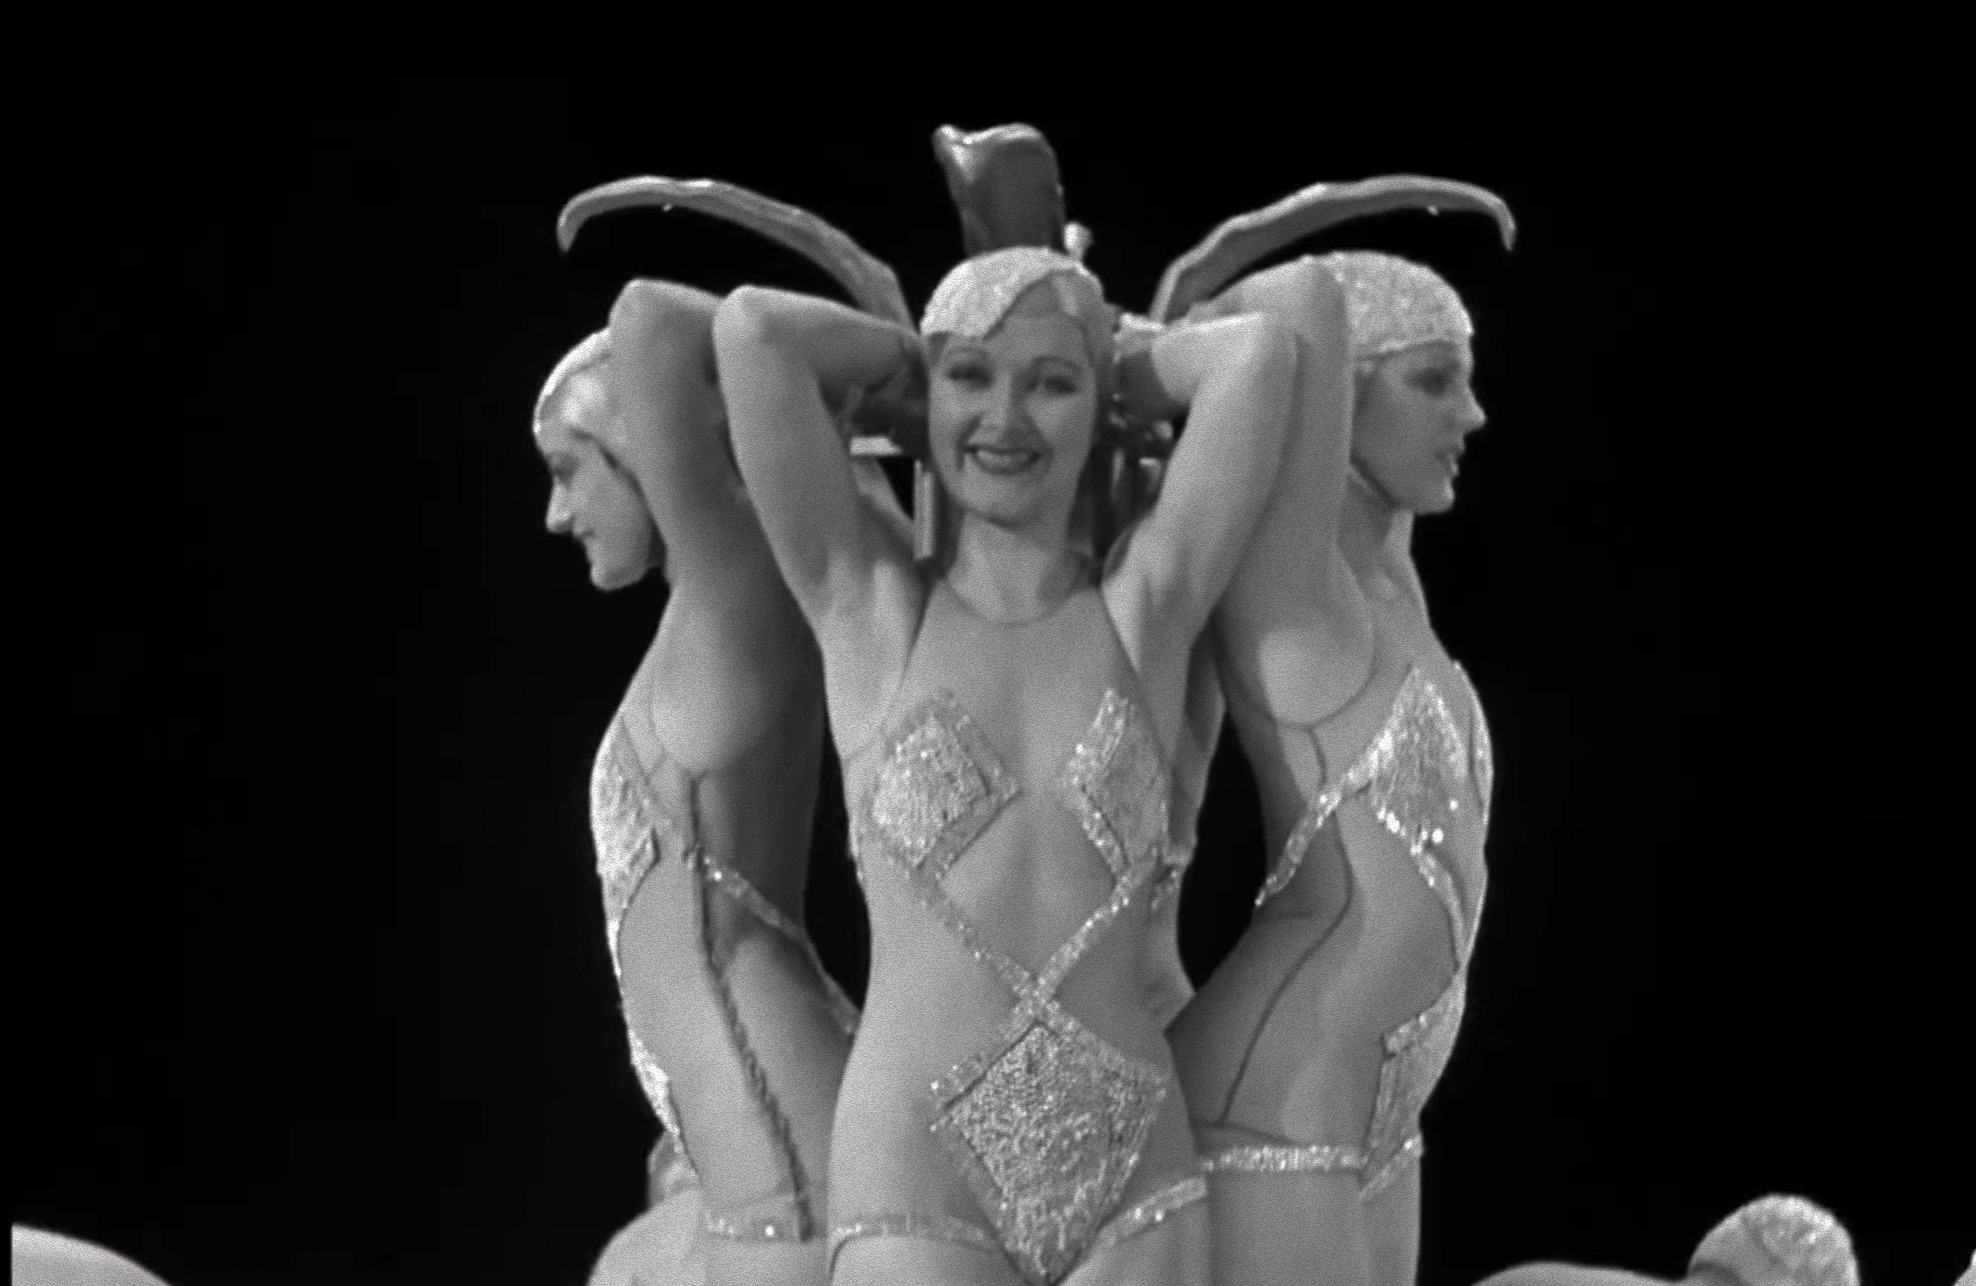 Barely clad Busby Berkeley babes in Footlight Parade 1933